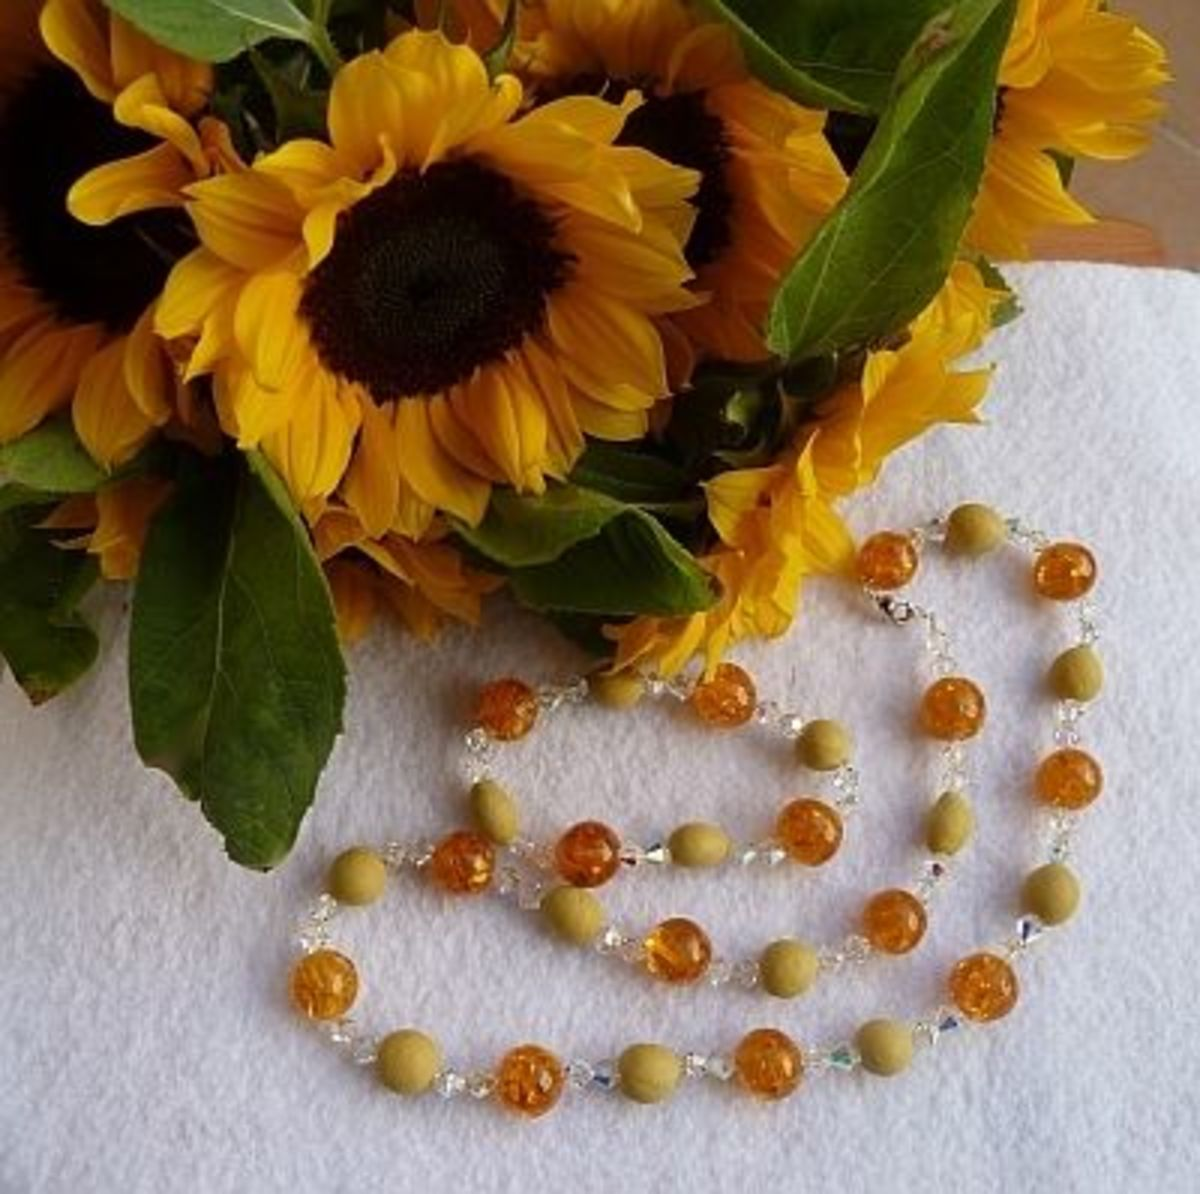 Sunflower necklace.